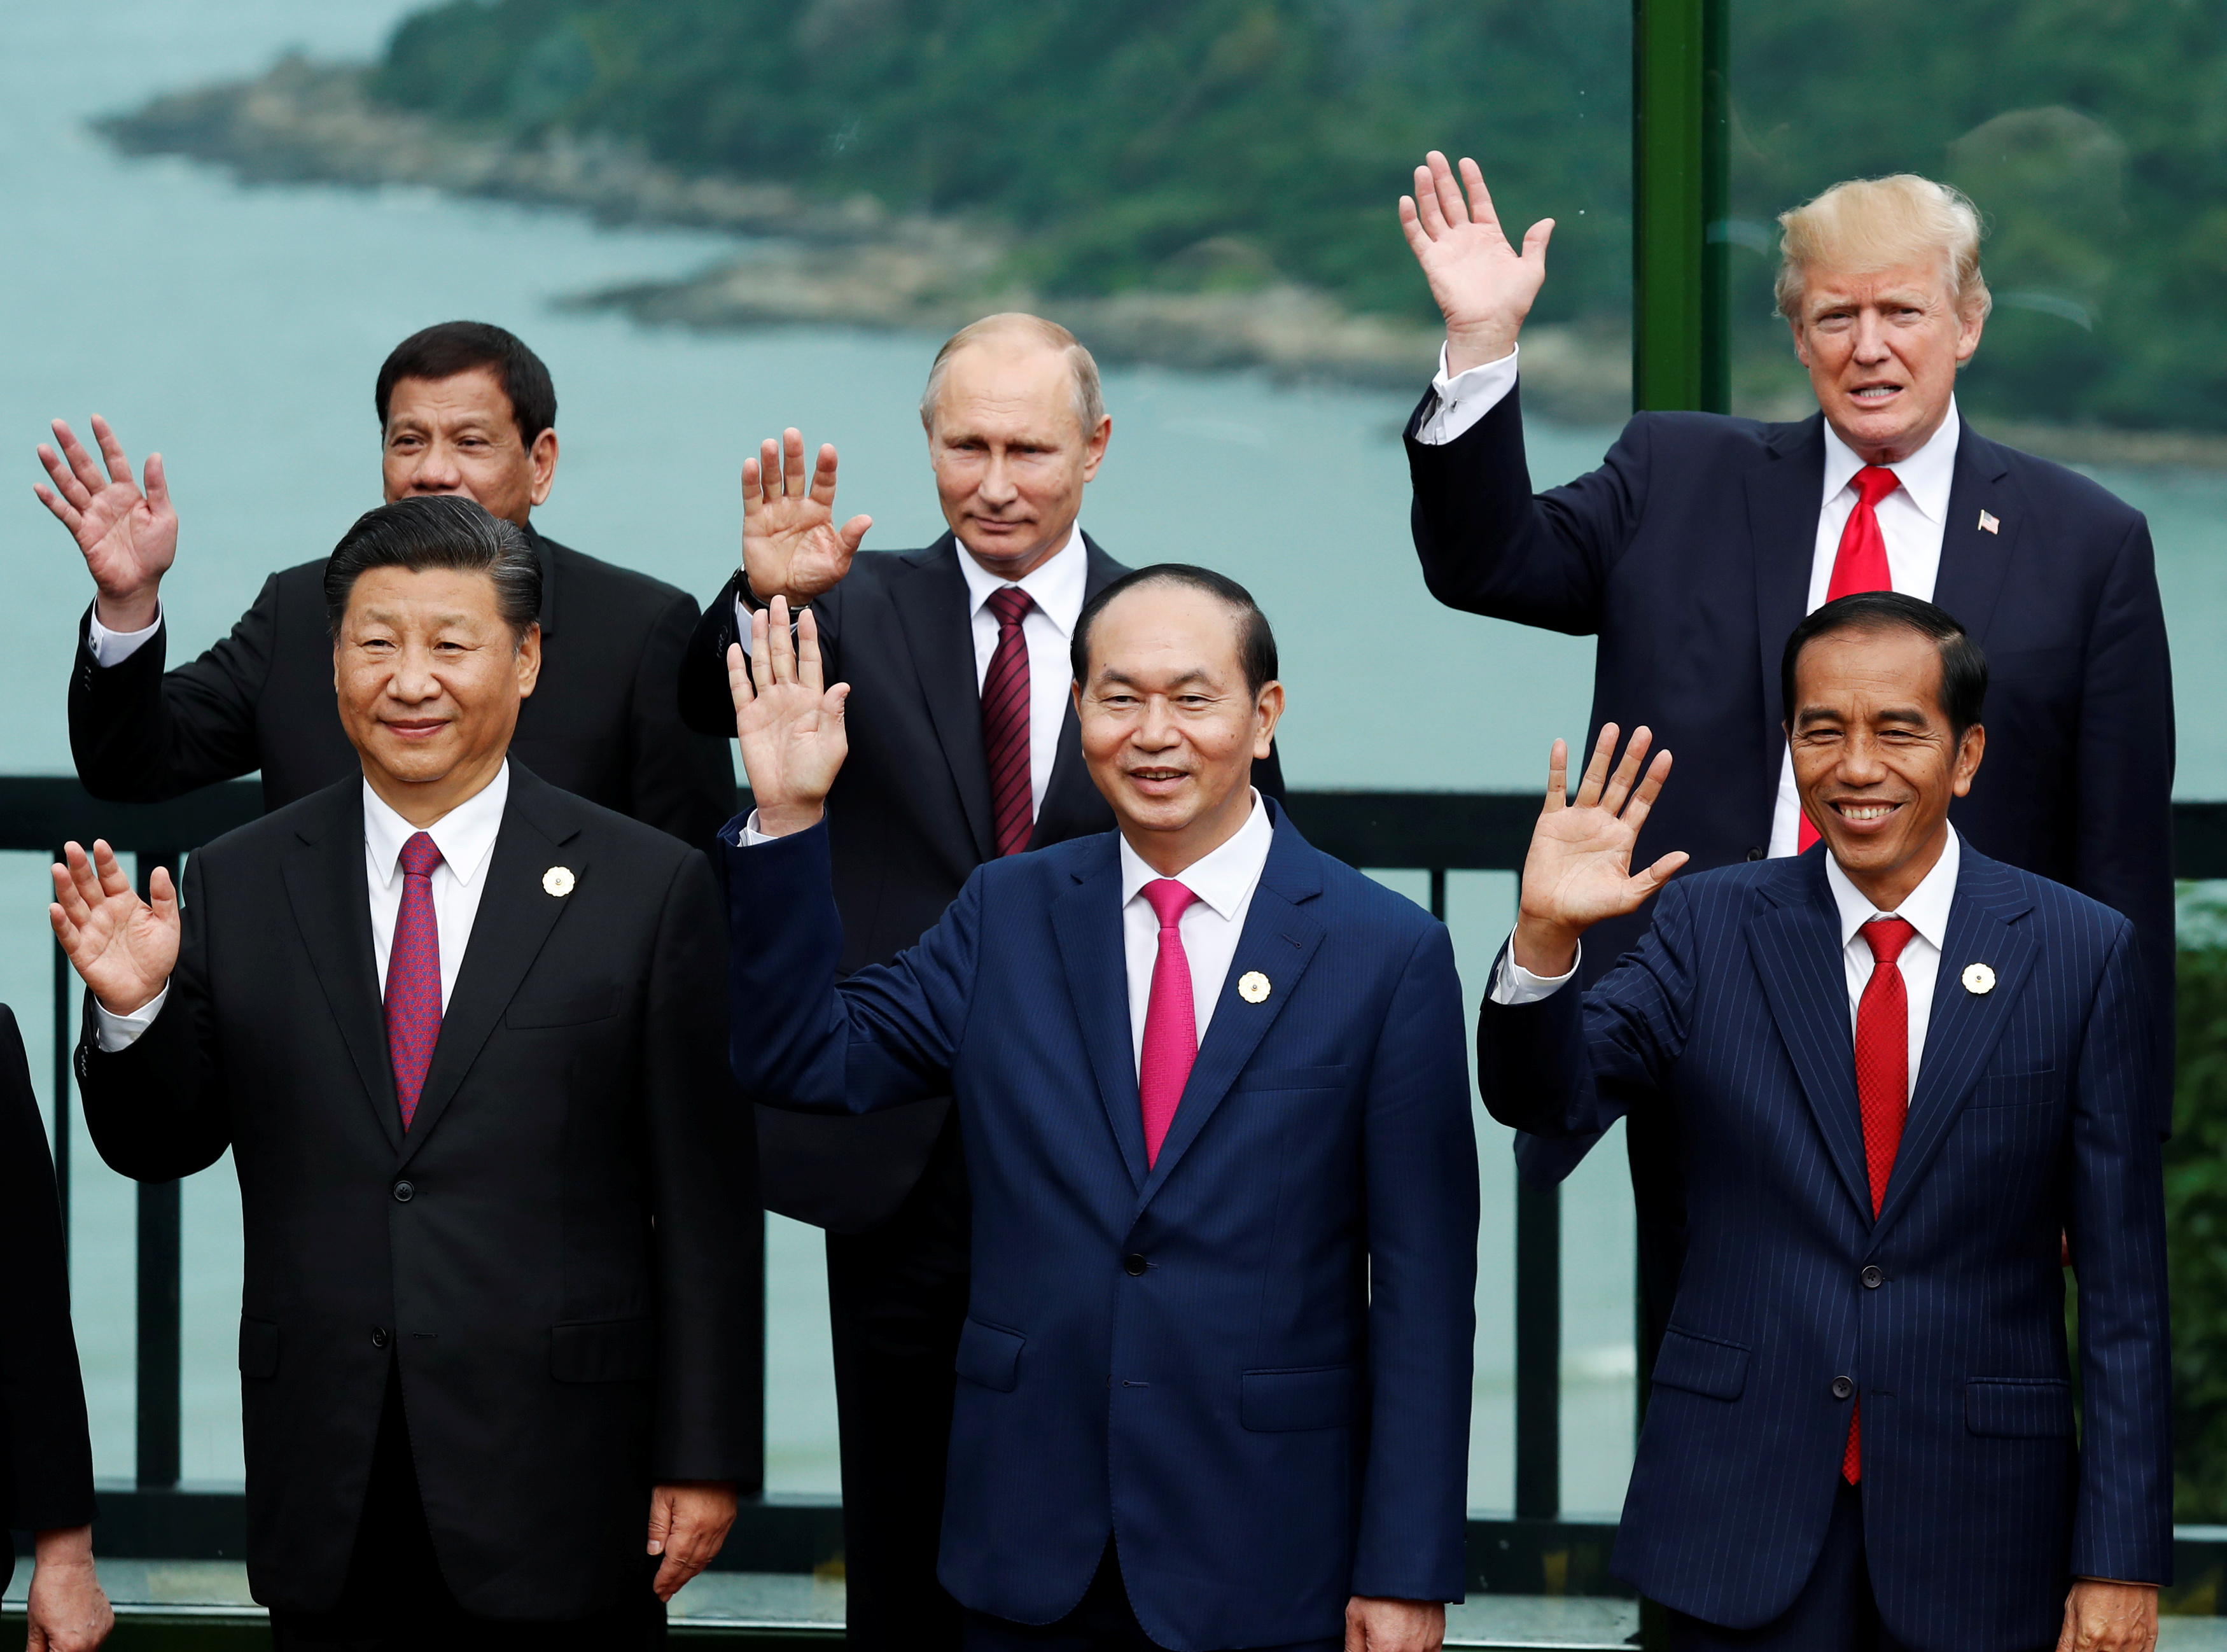 Leaders pose during the photo session at the APEC Summit in Danang, Vietnam, Nov. 11, 2017. Front, from left, China's President Xi Jinping, Vietnam's President Tran Dai Quang, Indonesia's President Joko Widodo; back, from left, Philippines' President...